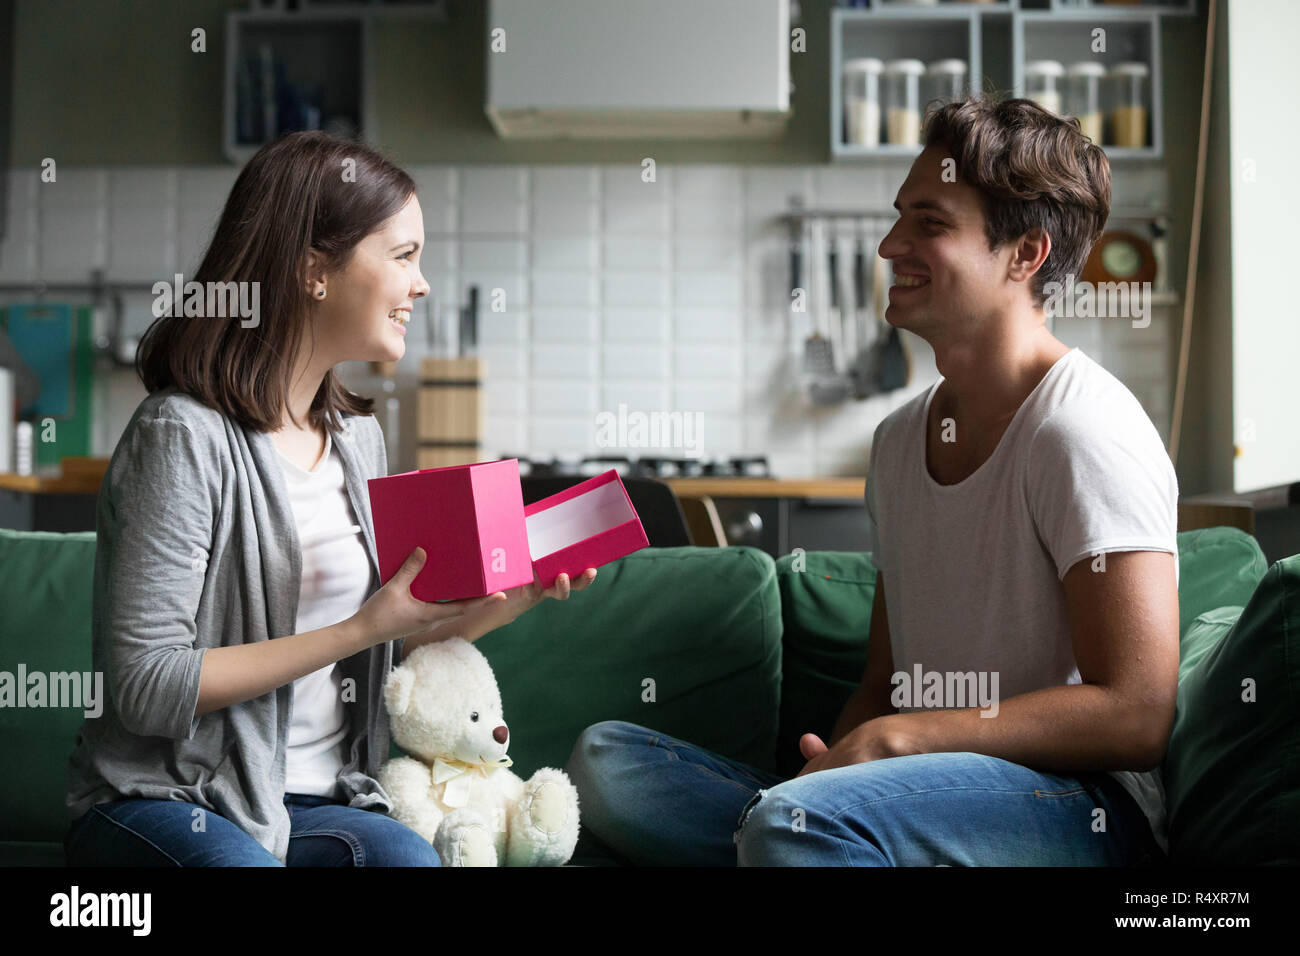 Young man gave to beloved girl a gift - Stock Image